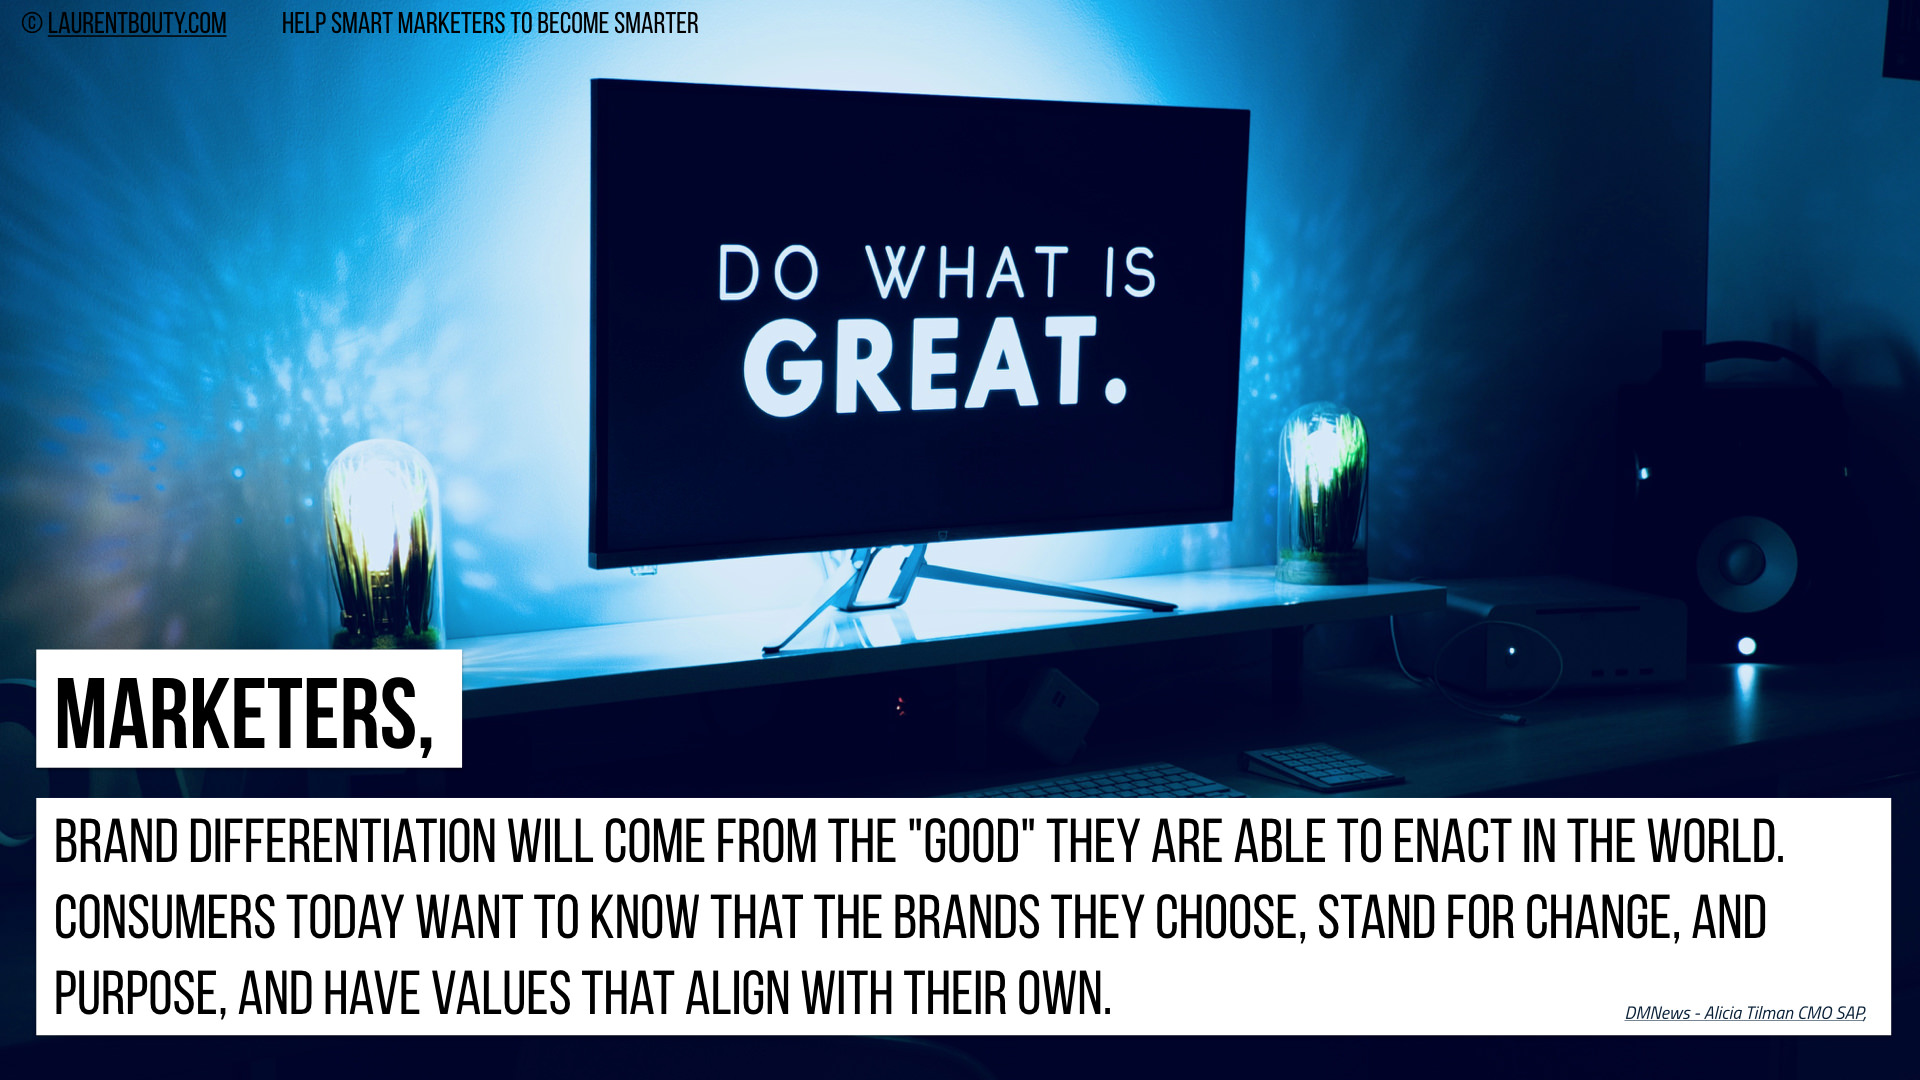 Marketers, Brand Differentiation Come From the Good